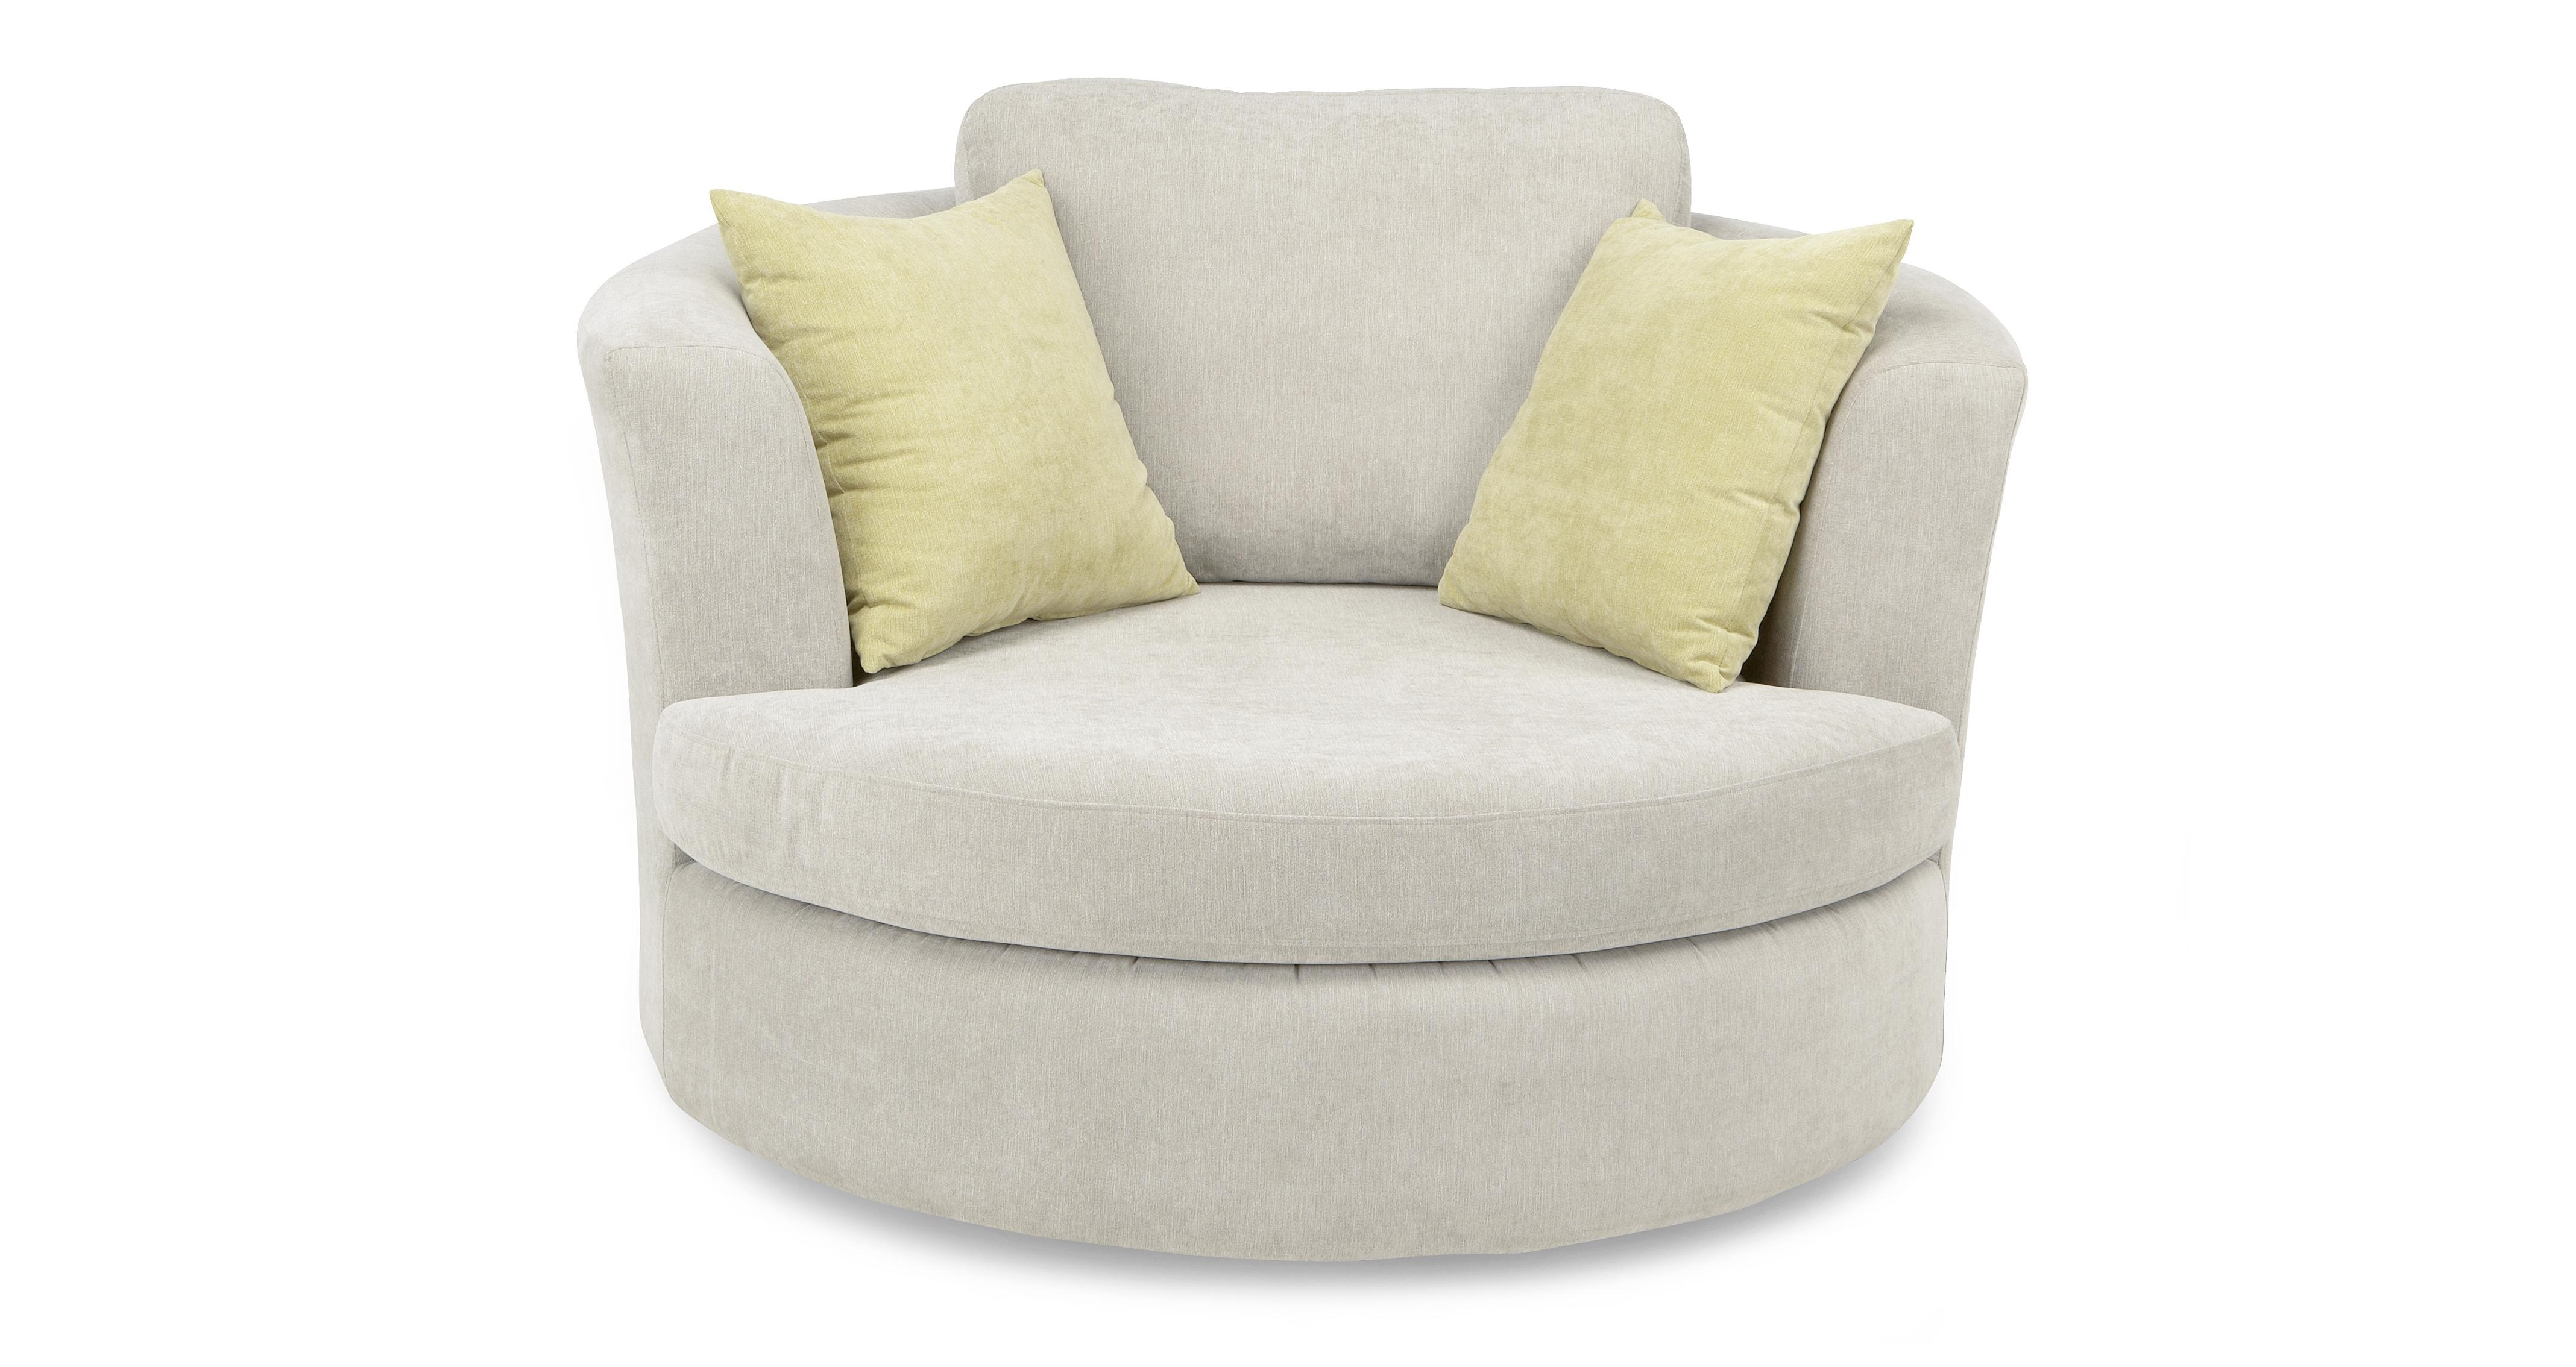 Large Round Swivel Chair Home Chair Designs Intended For Cuddler Swivel Sofa Chairs (Image 9 of 15)